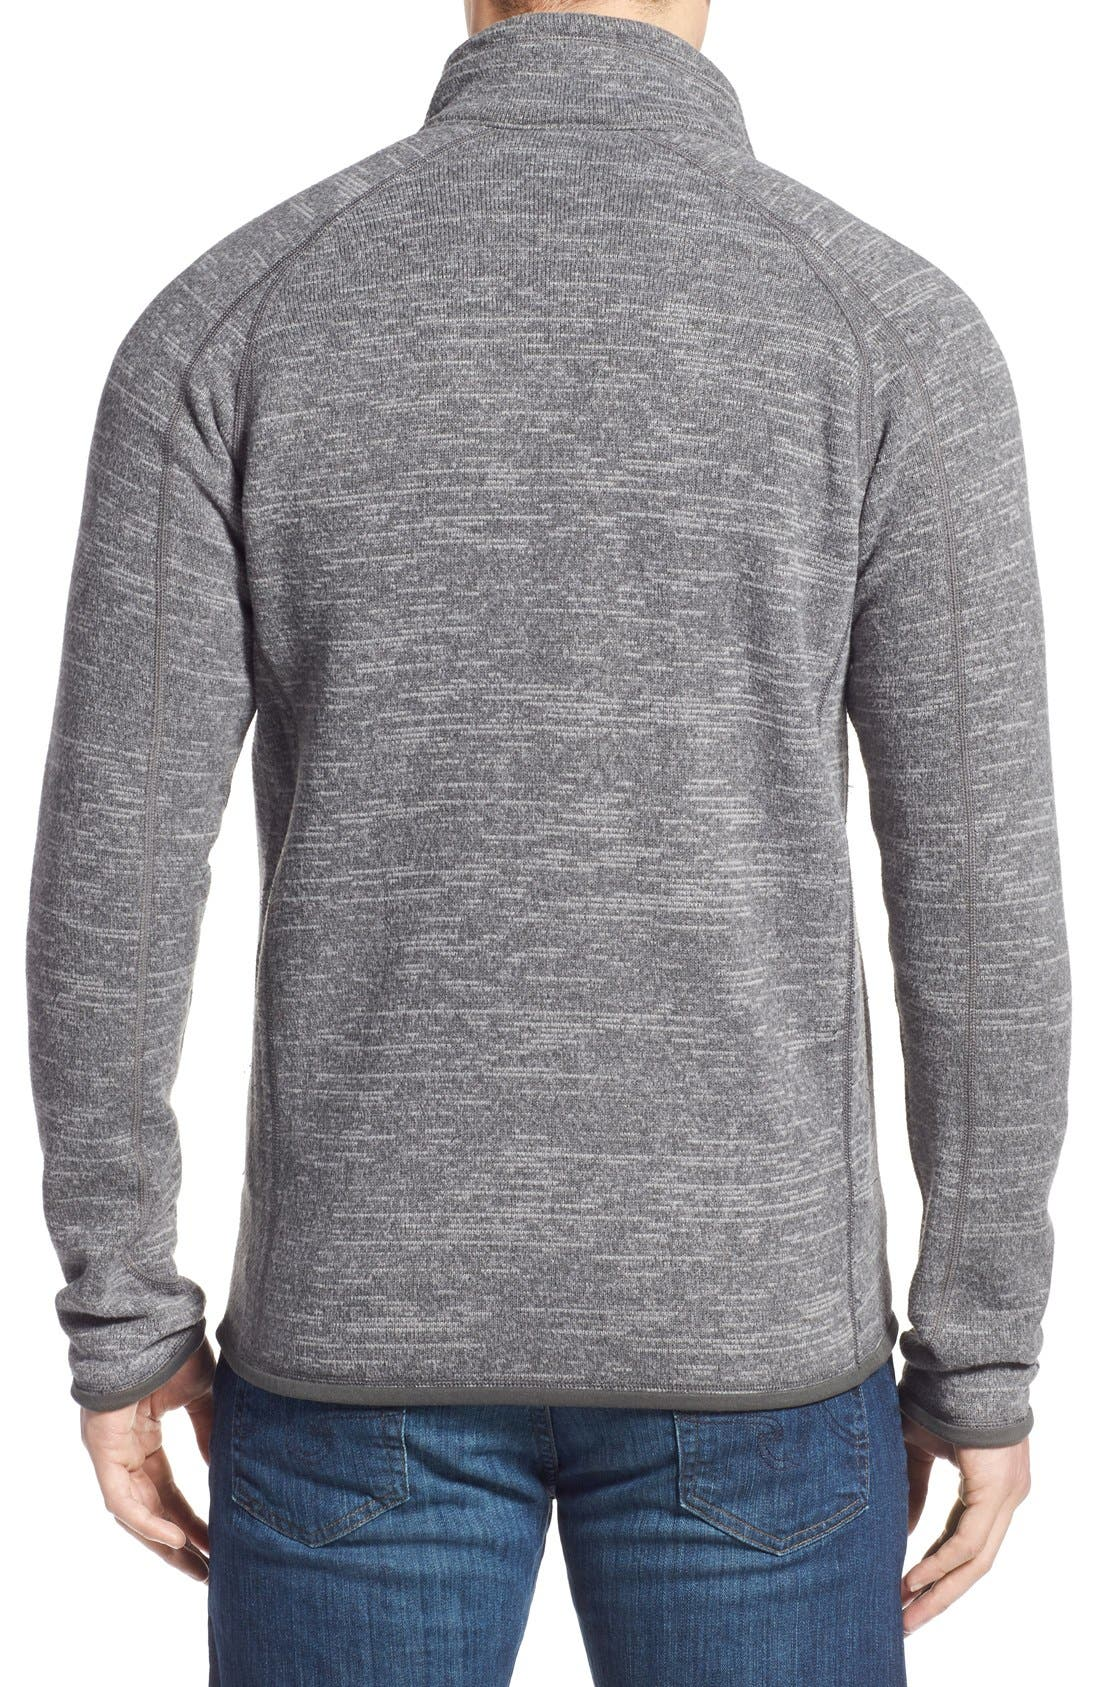 Better Sweater Zip Front Jacket,                             Alternate thumbnail 4, color,                             NICKEL/ FORGE GREY